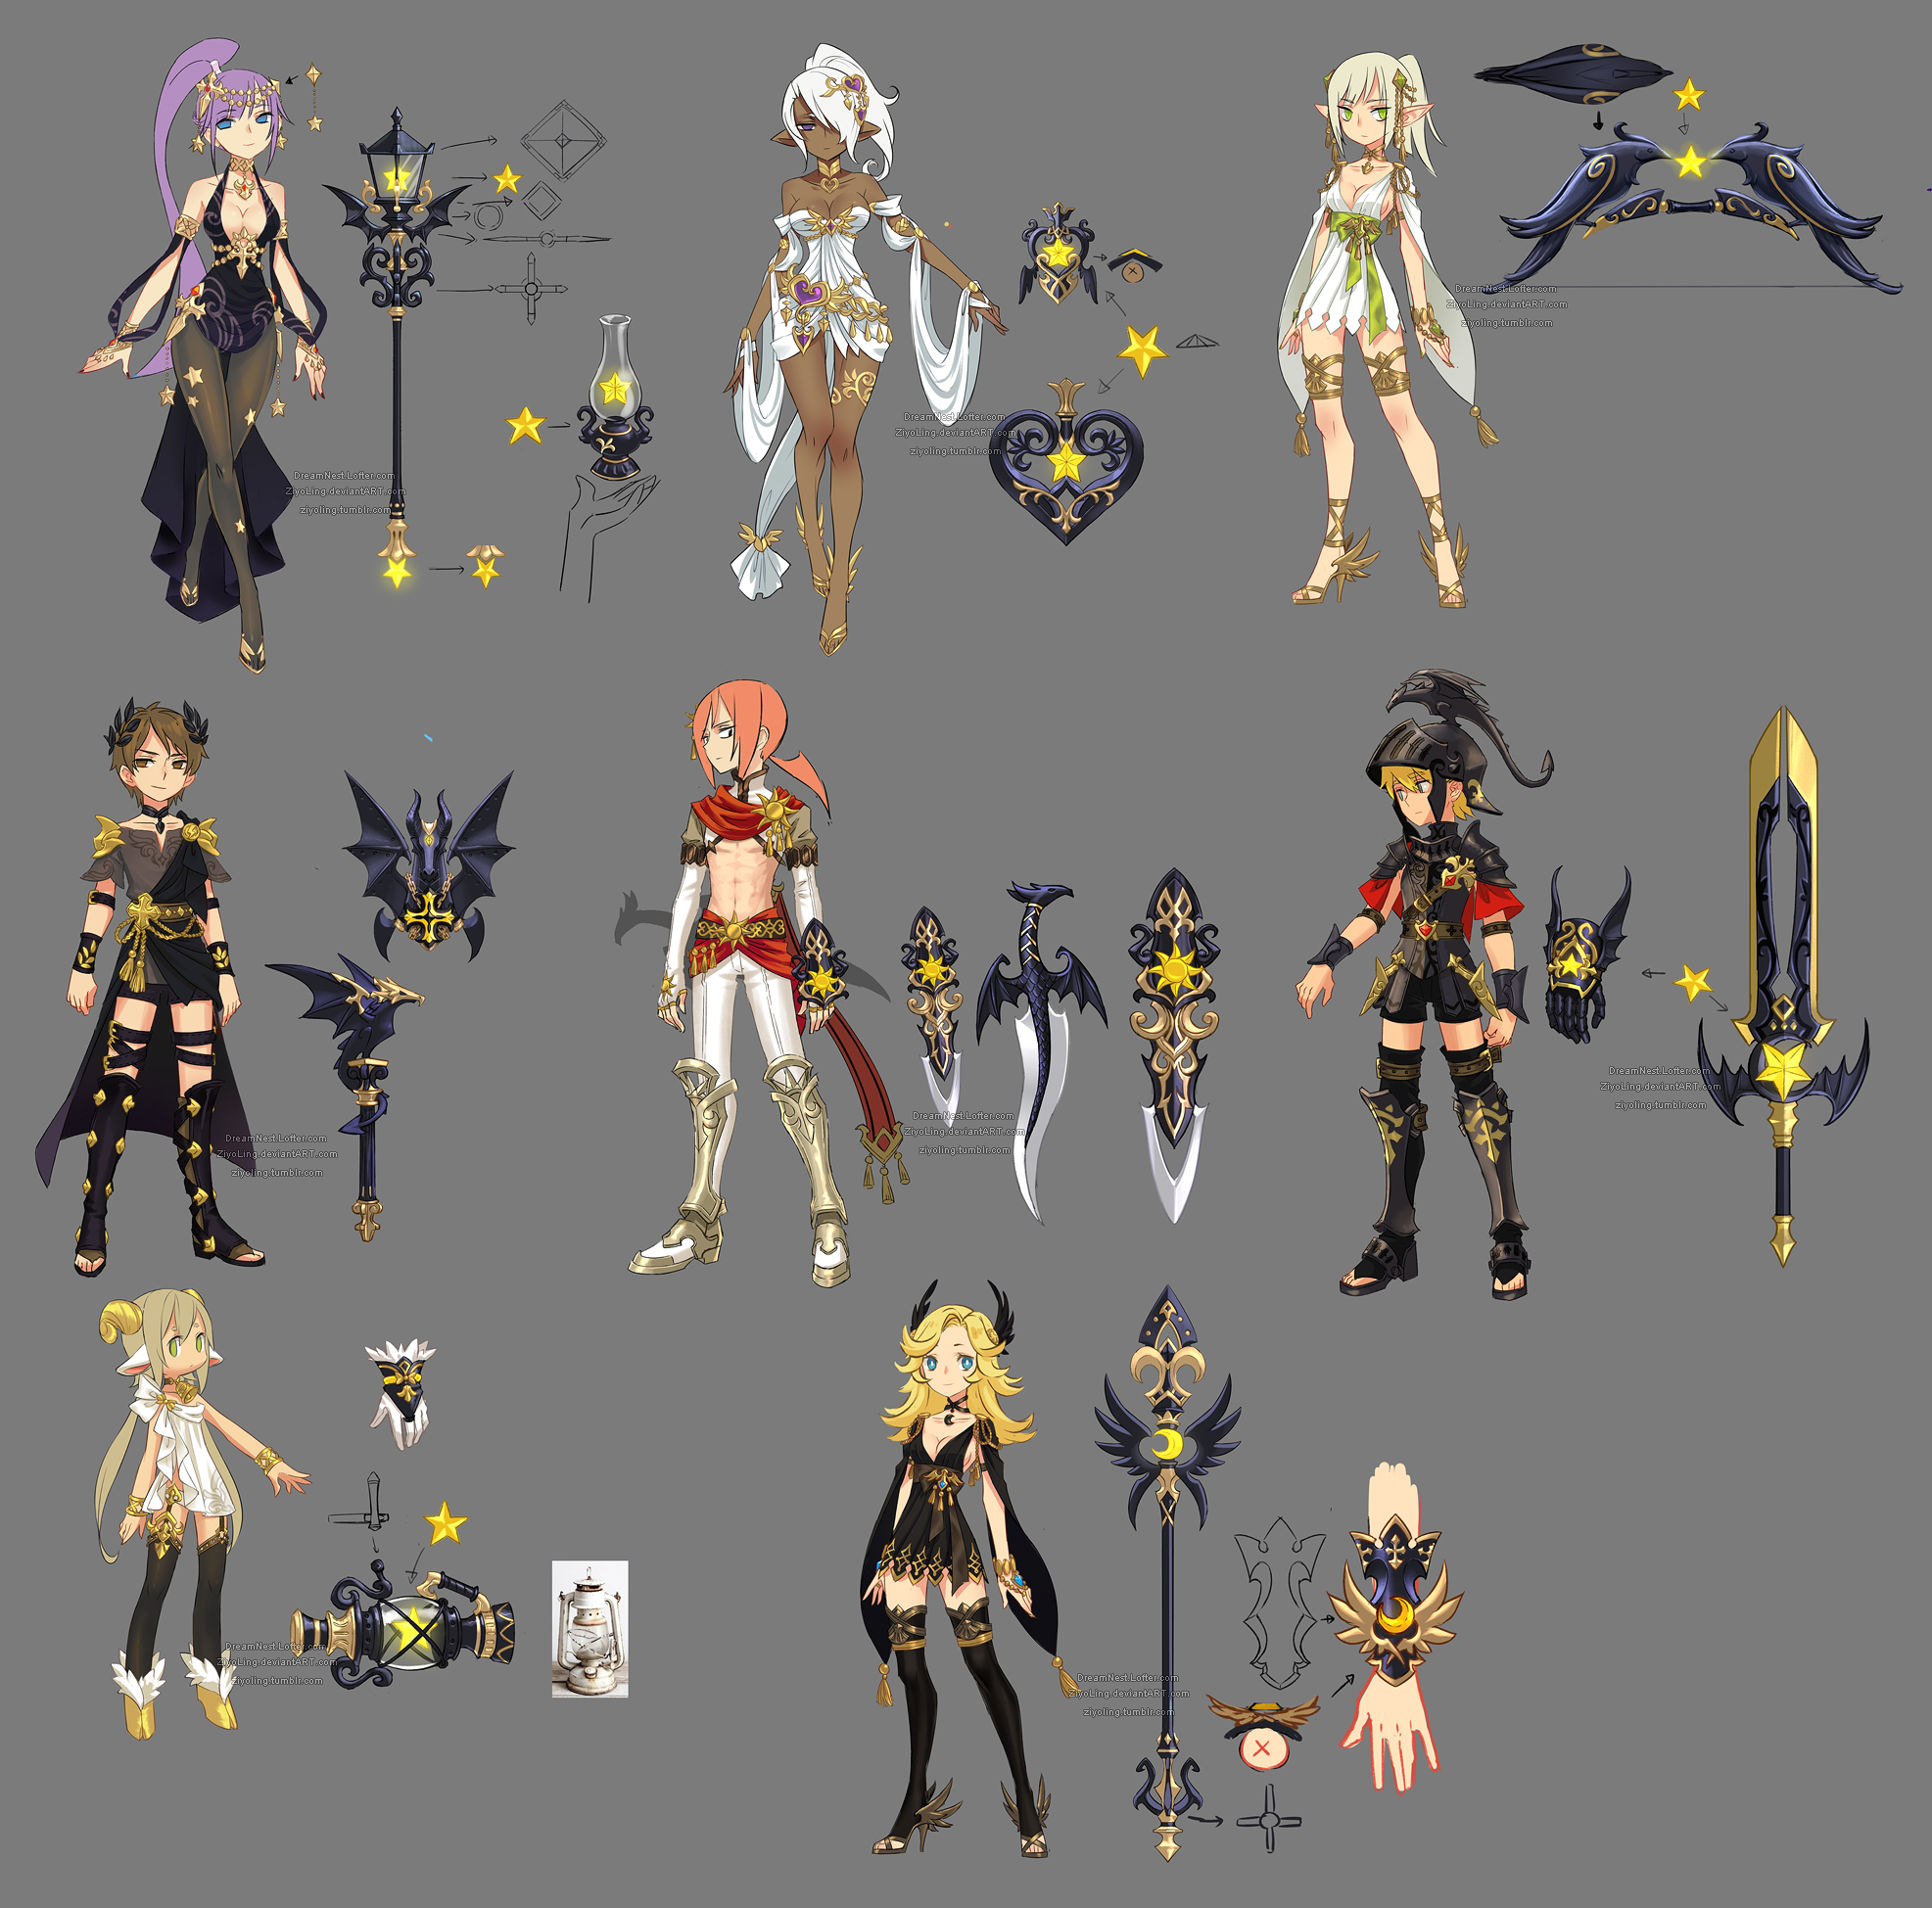 Myth Costume Weapons.jpg & Image - Myth Costume Weapons.jpg | Dragon Nest SEA Wiki | FANDOM ...